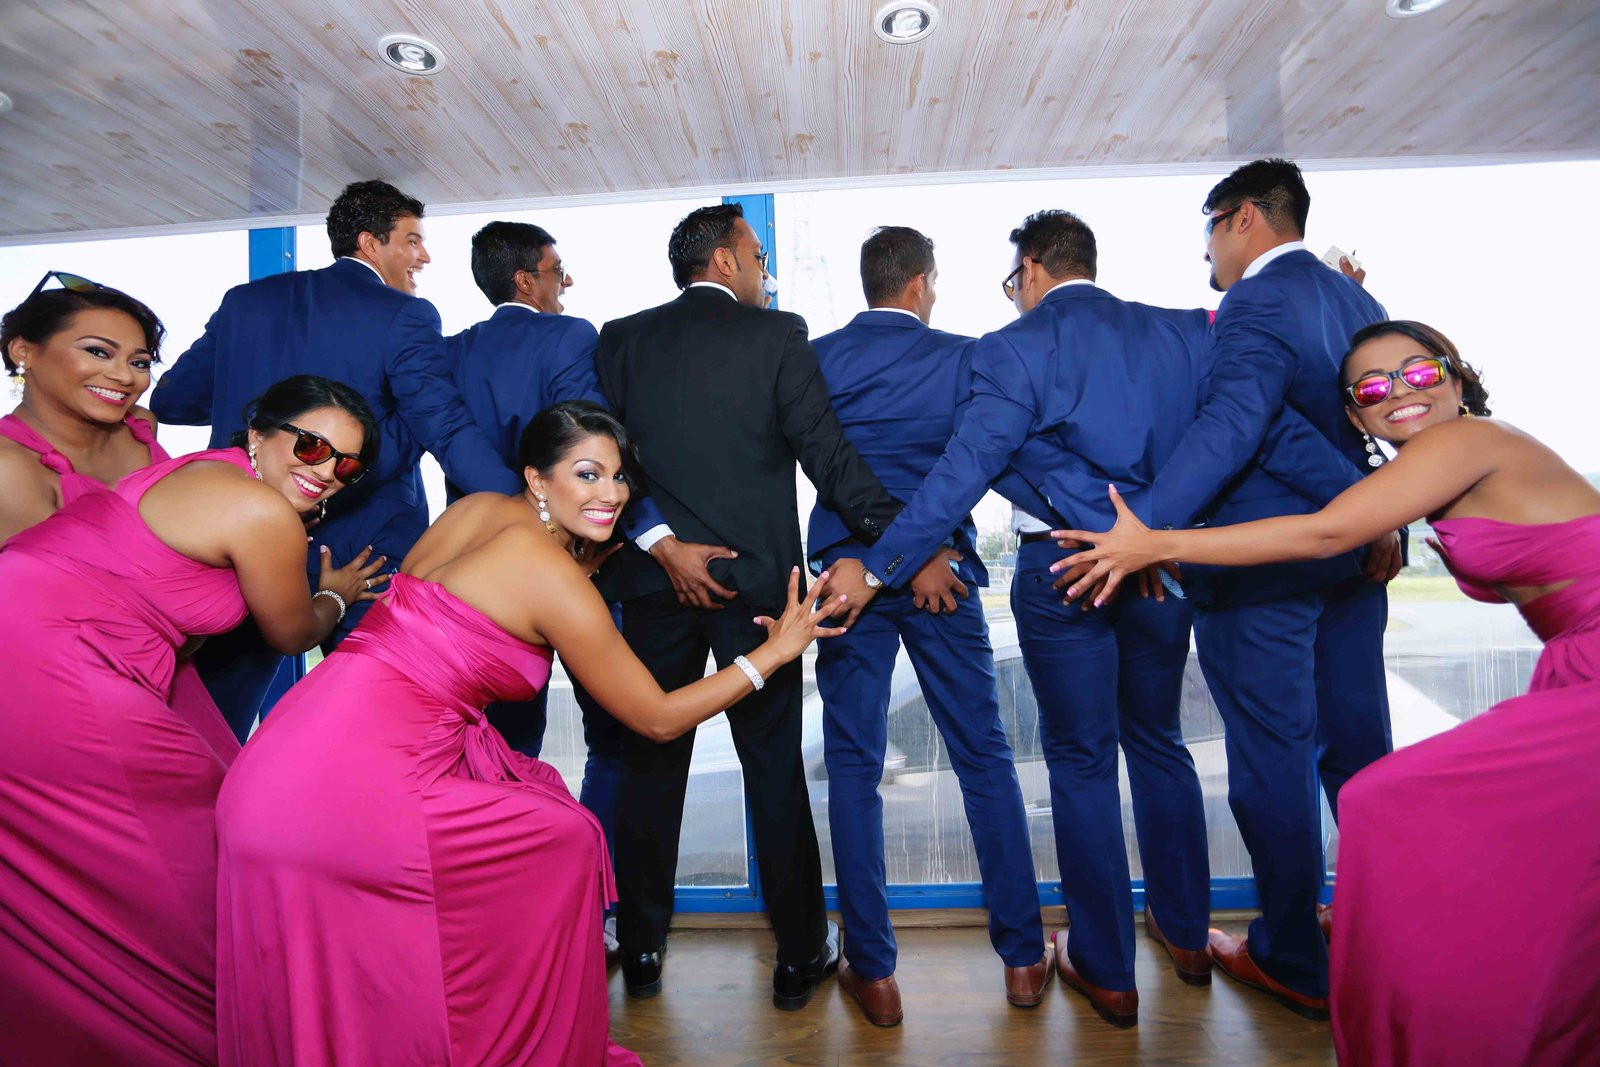 Cheeky wedding party pose. Photo by Ross Photography, Trinidad, W.I..